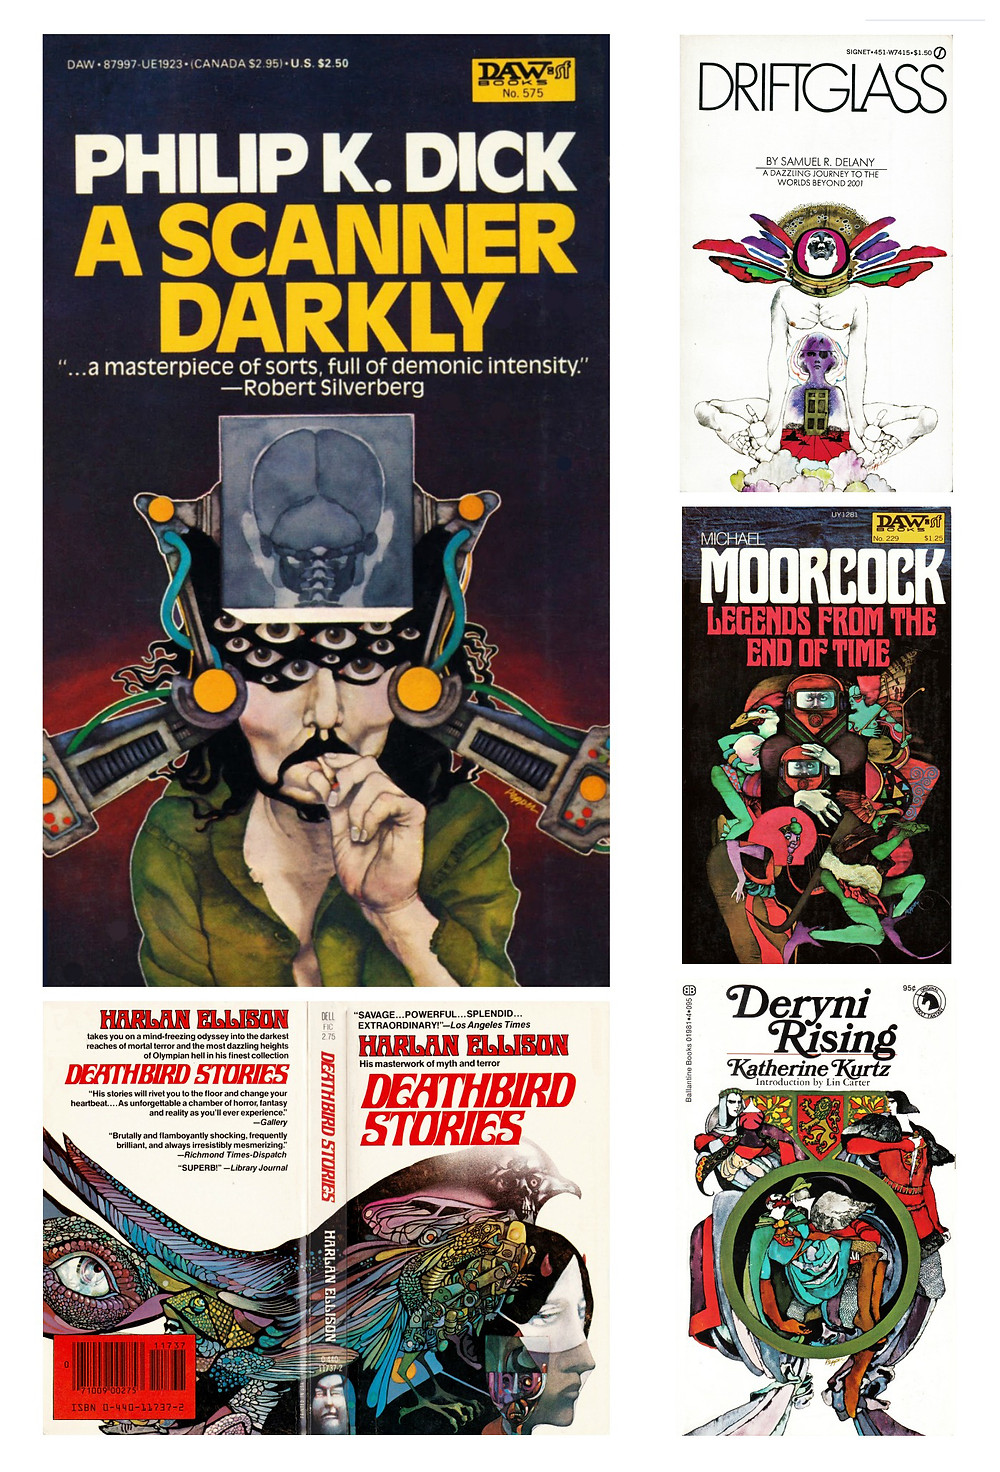 Bob Pepper's artwork for Philip K. Dick's A Scanner Darkly (DAW, 1984); Harlan Ellison's Deathbird Stories (Dell, 1980); Samuel R. Delany's Driftglass (Signet, 1971); Michael Moorcock's Legends from the End of Time (DAW, 1977); and Katherine Kurtz's Deryni Rising (Ballantine, 1970)